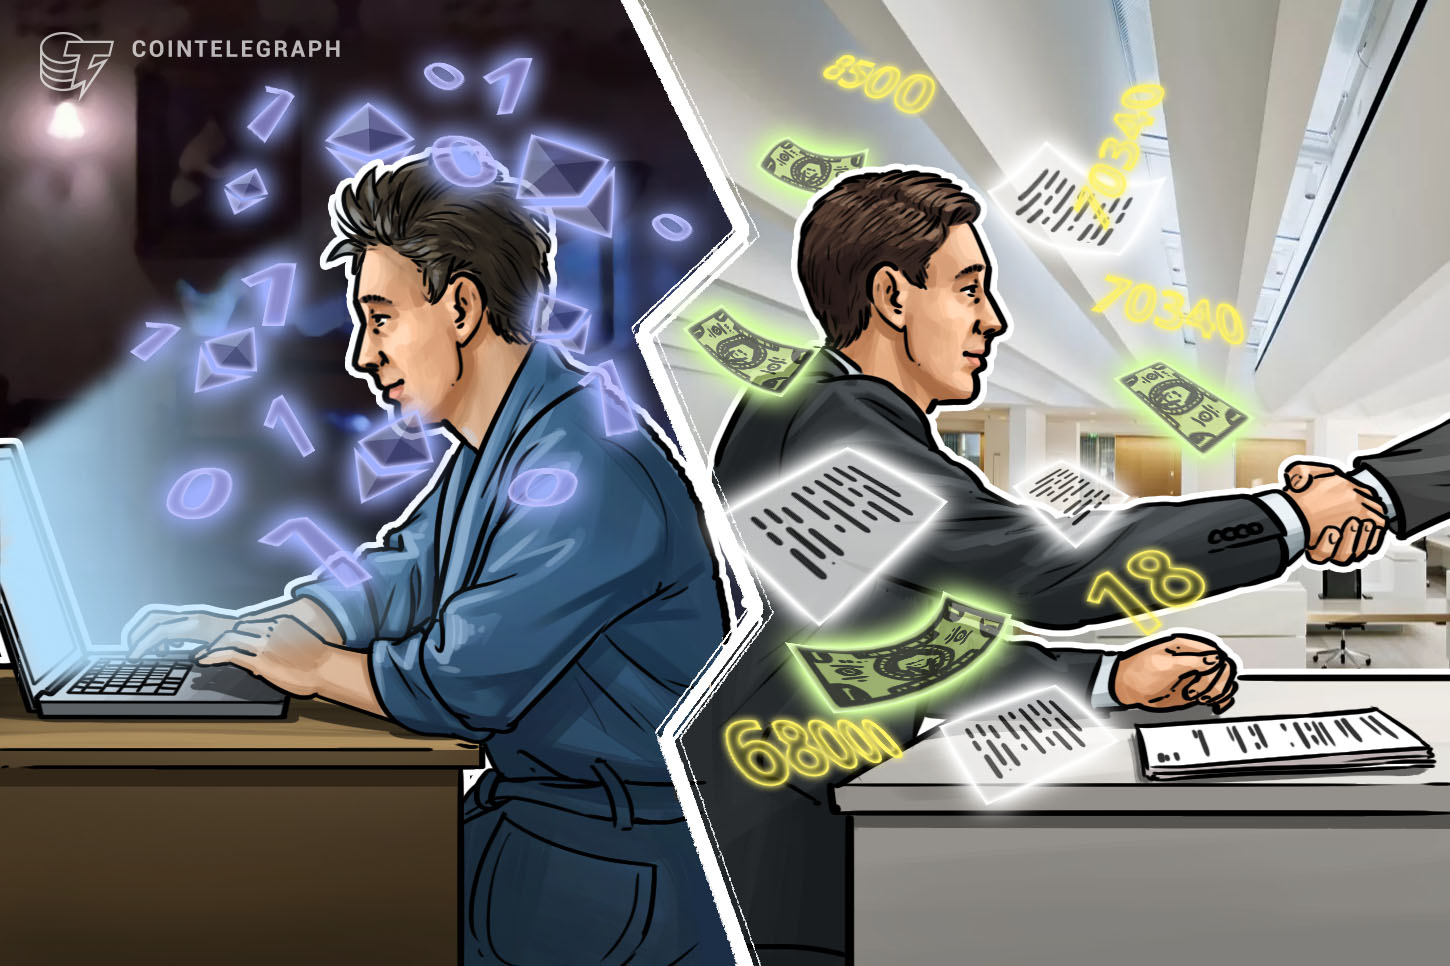 ICO Vs Venture Capital: What Is Better For Your Company? | Cointelegraph